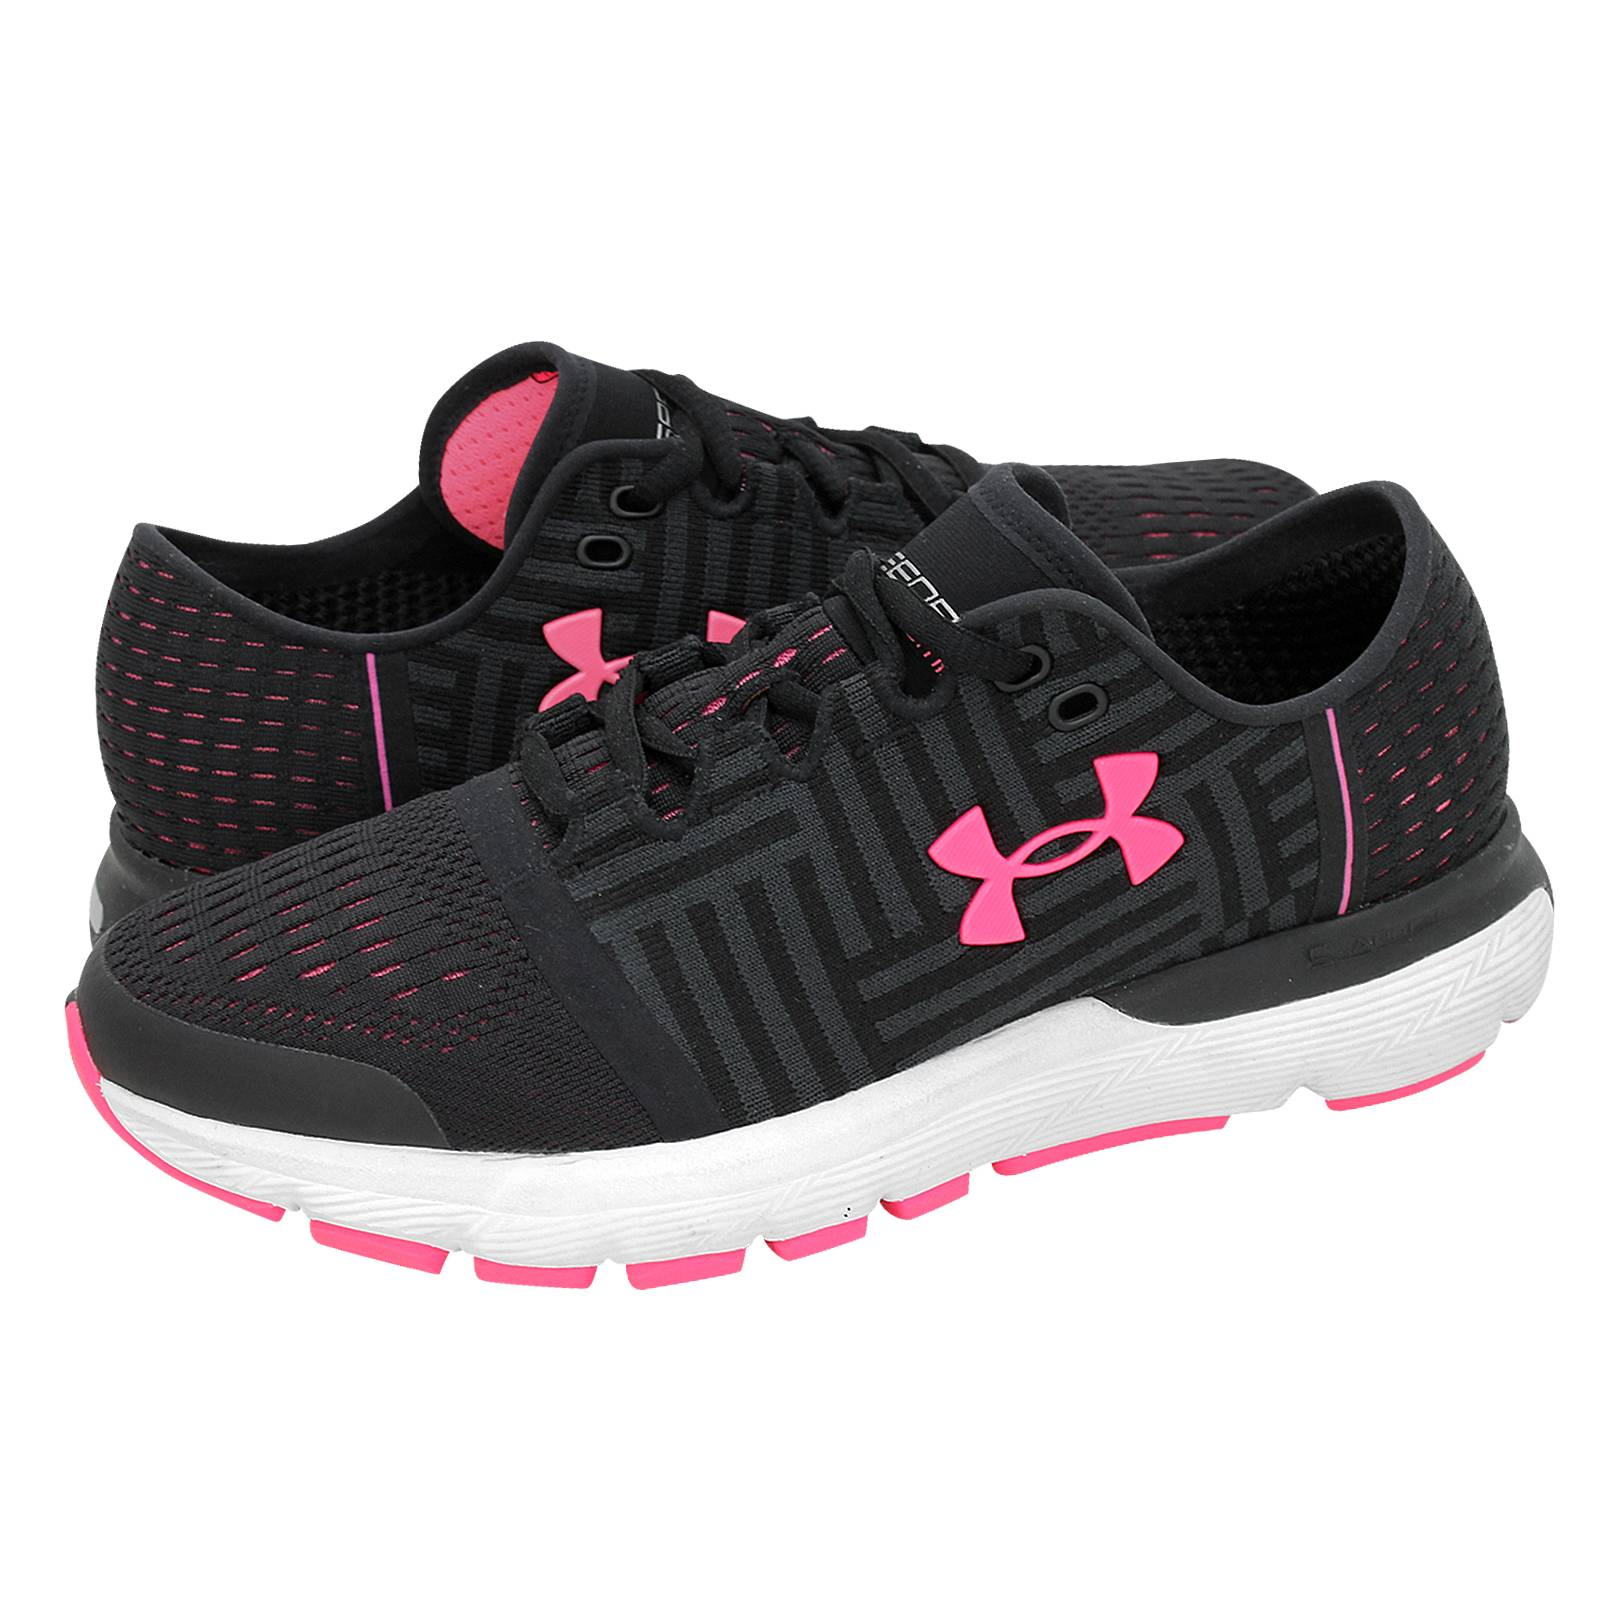 new product 4fe77 fcf72 Under Armour Speedform Gemini 3 athletic shoes